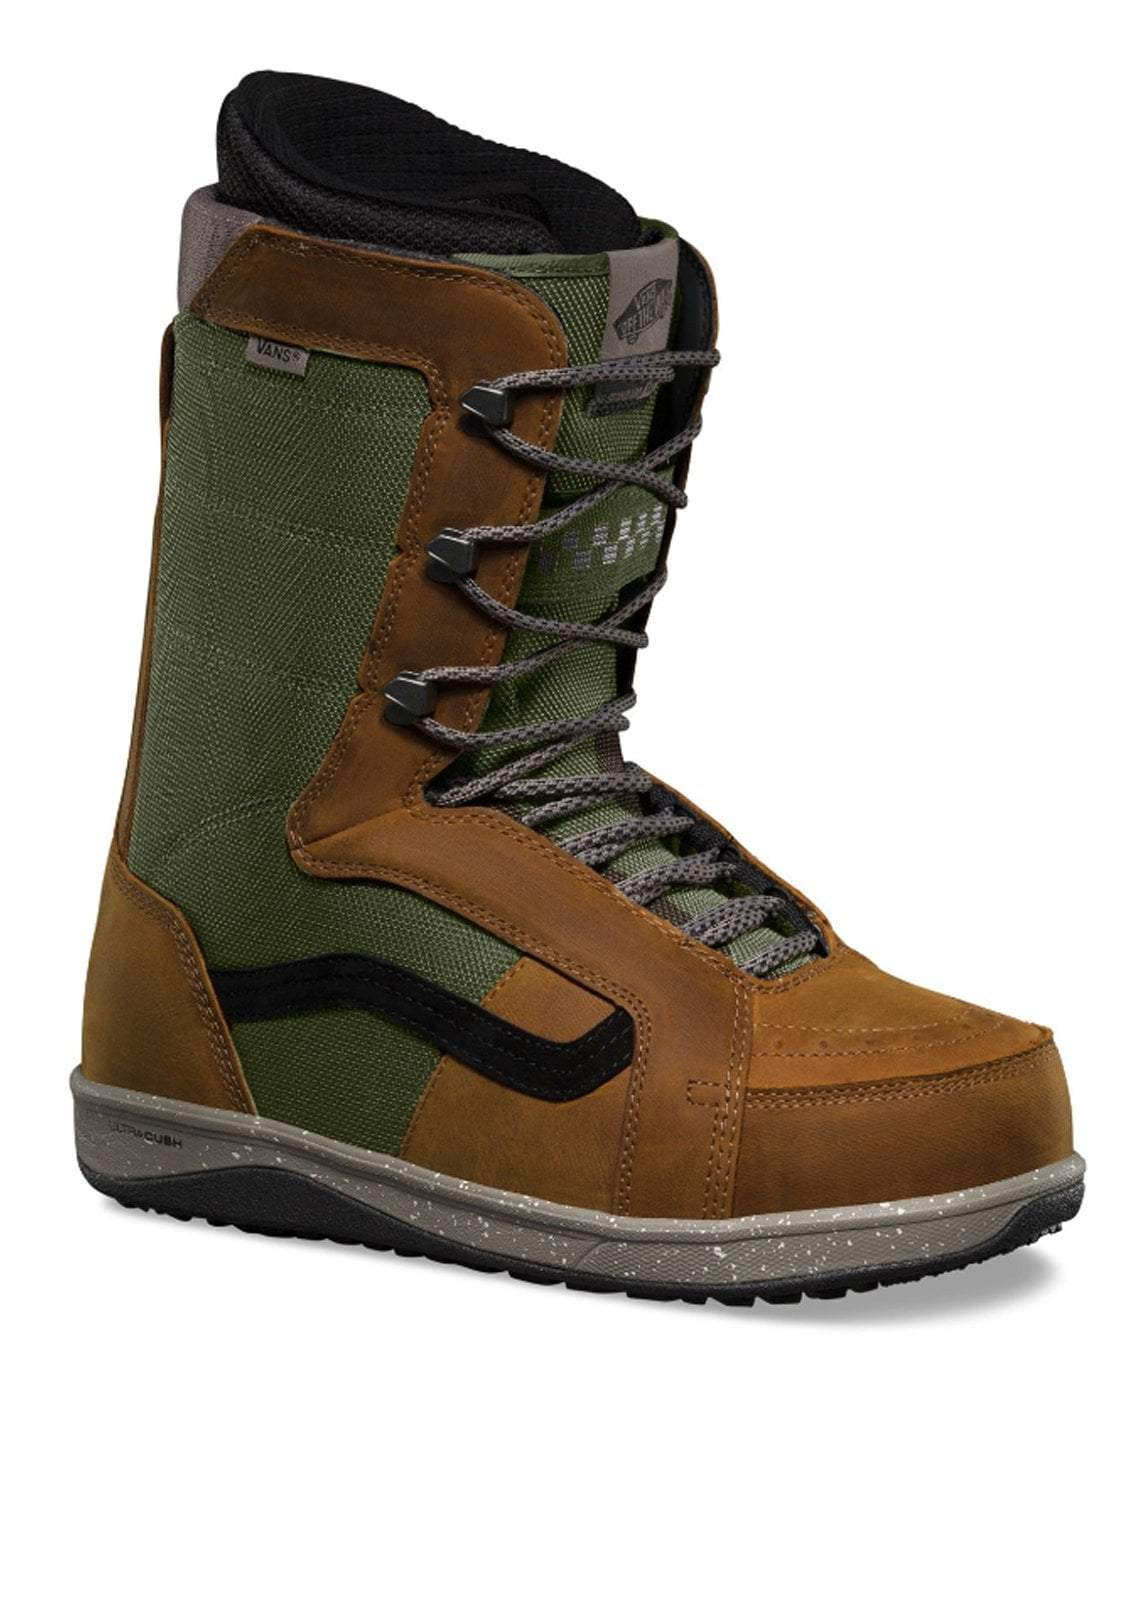 Men's Hi-Standard PRO 18' Snow Boot